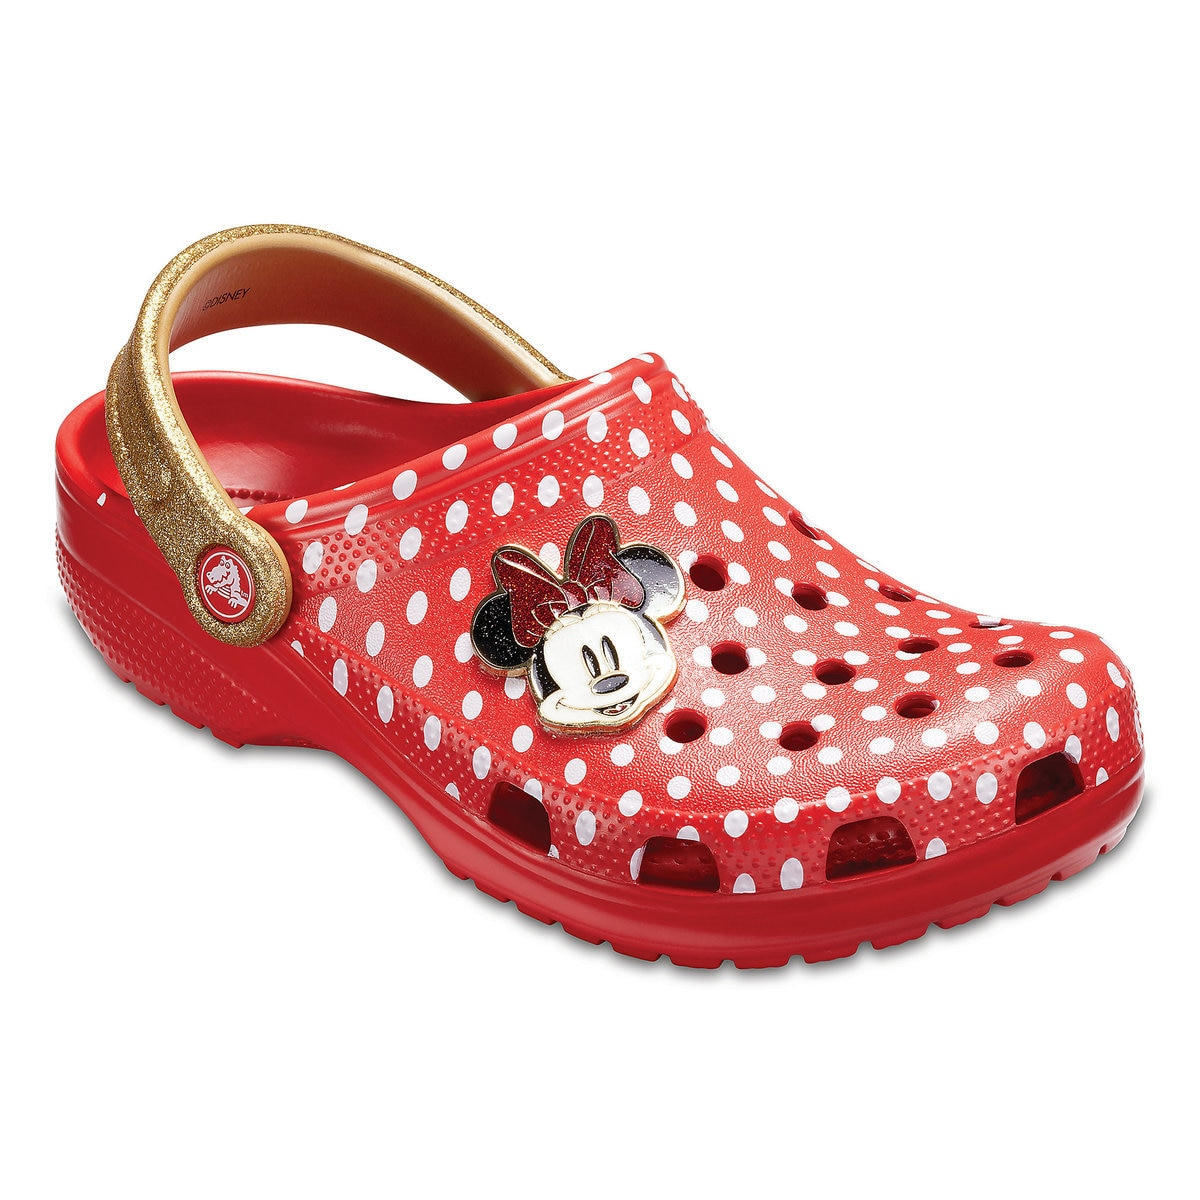 f1df68ce4 Product Image of Minnie Mouse Classic Clogs for Women by Crocs   1